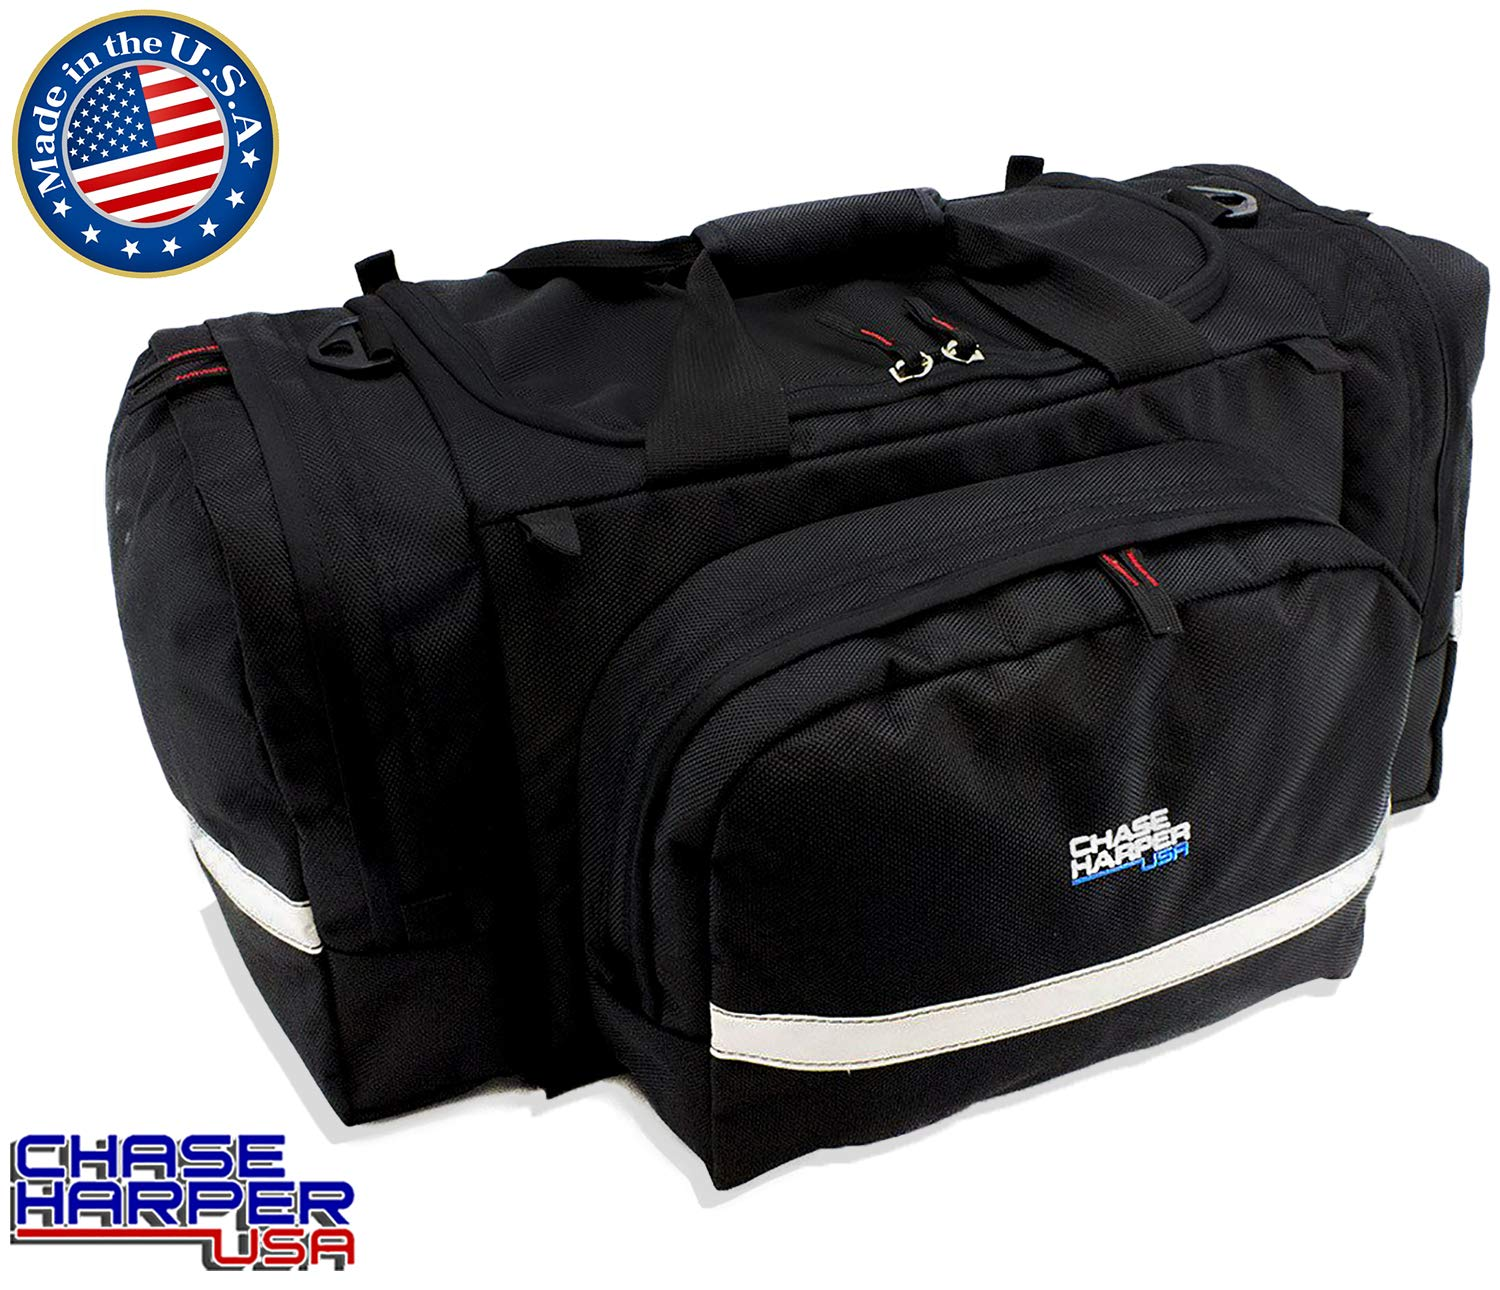 Chase Harper 4650 Supersport Tail Trunk 32.9 Liters